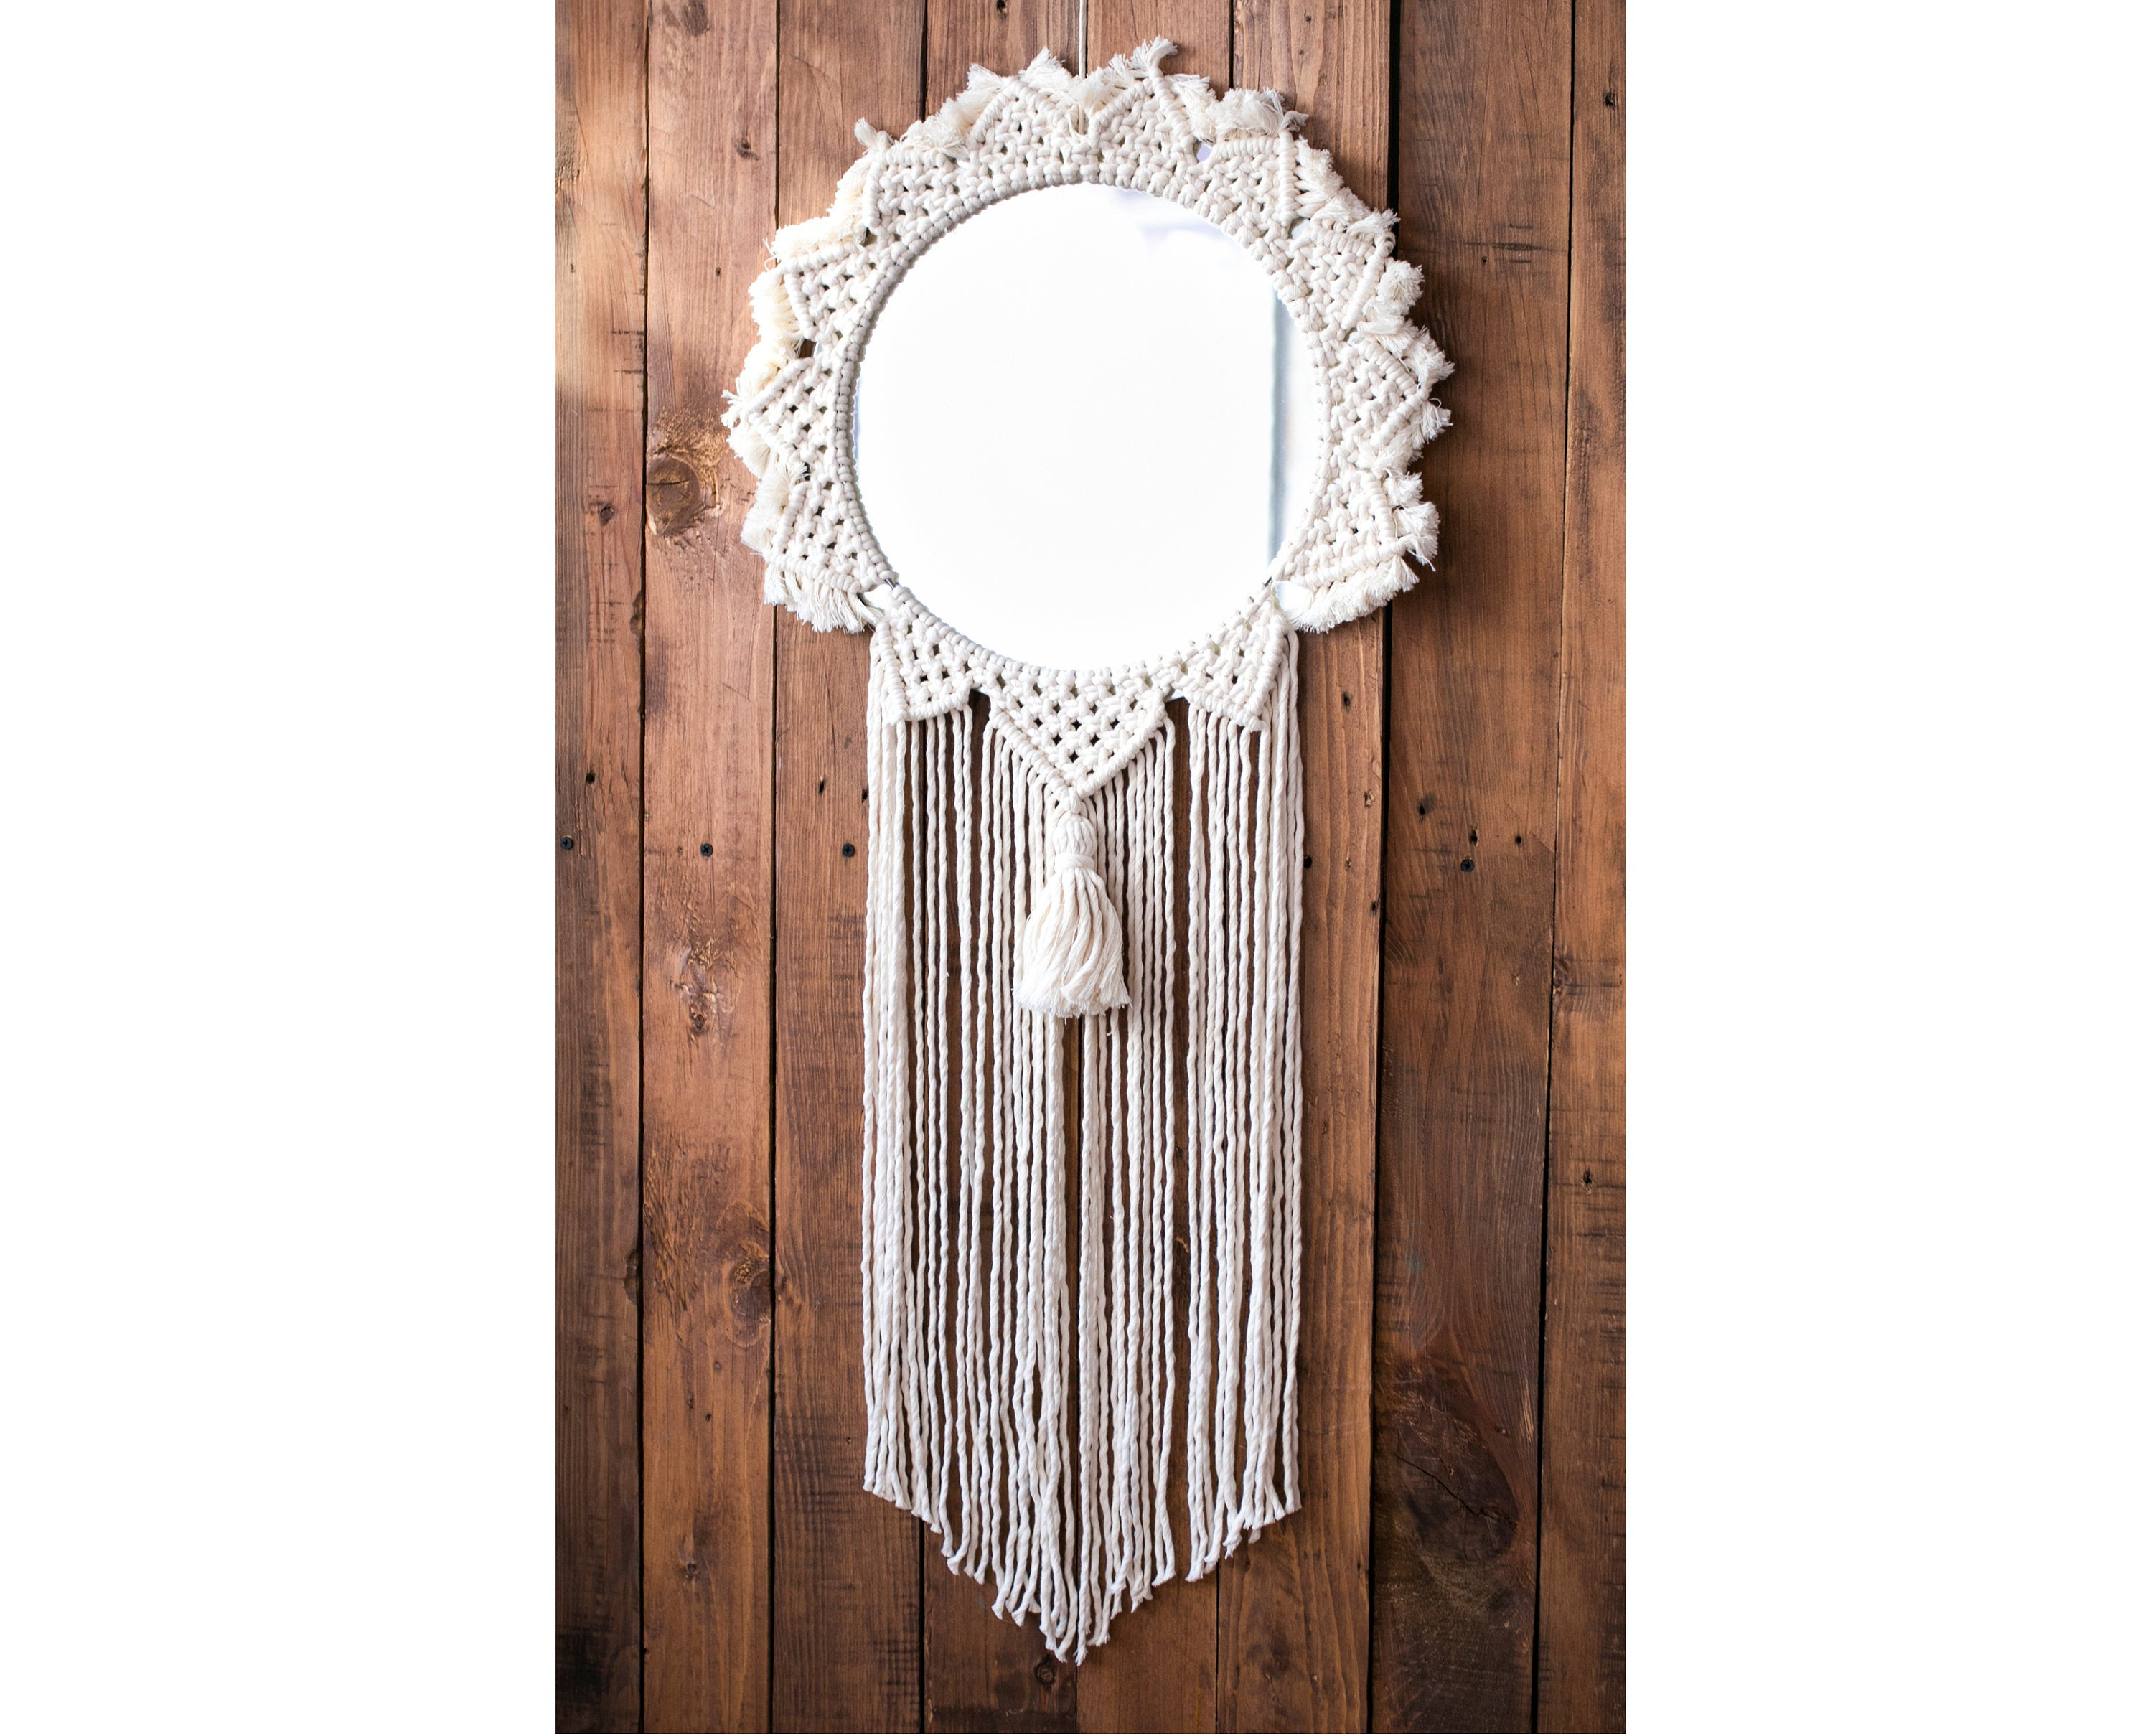 Preferred Ethnic Wall Mirrors Intended For Macrame Framed Wall Mirror, Large Decorative Mirror, Bohemian Round Mirror,  Ethnic Wall Decor, Large Macrame Mirror, Macrame Wall Hanging (View 16 of 20)